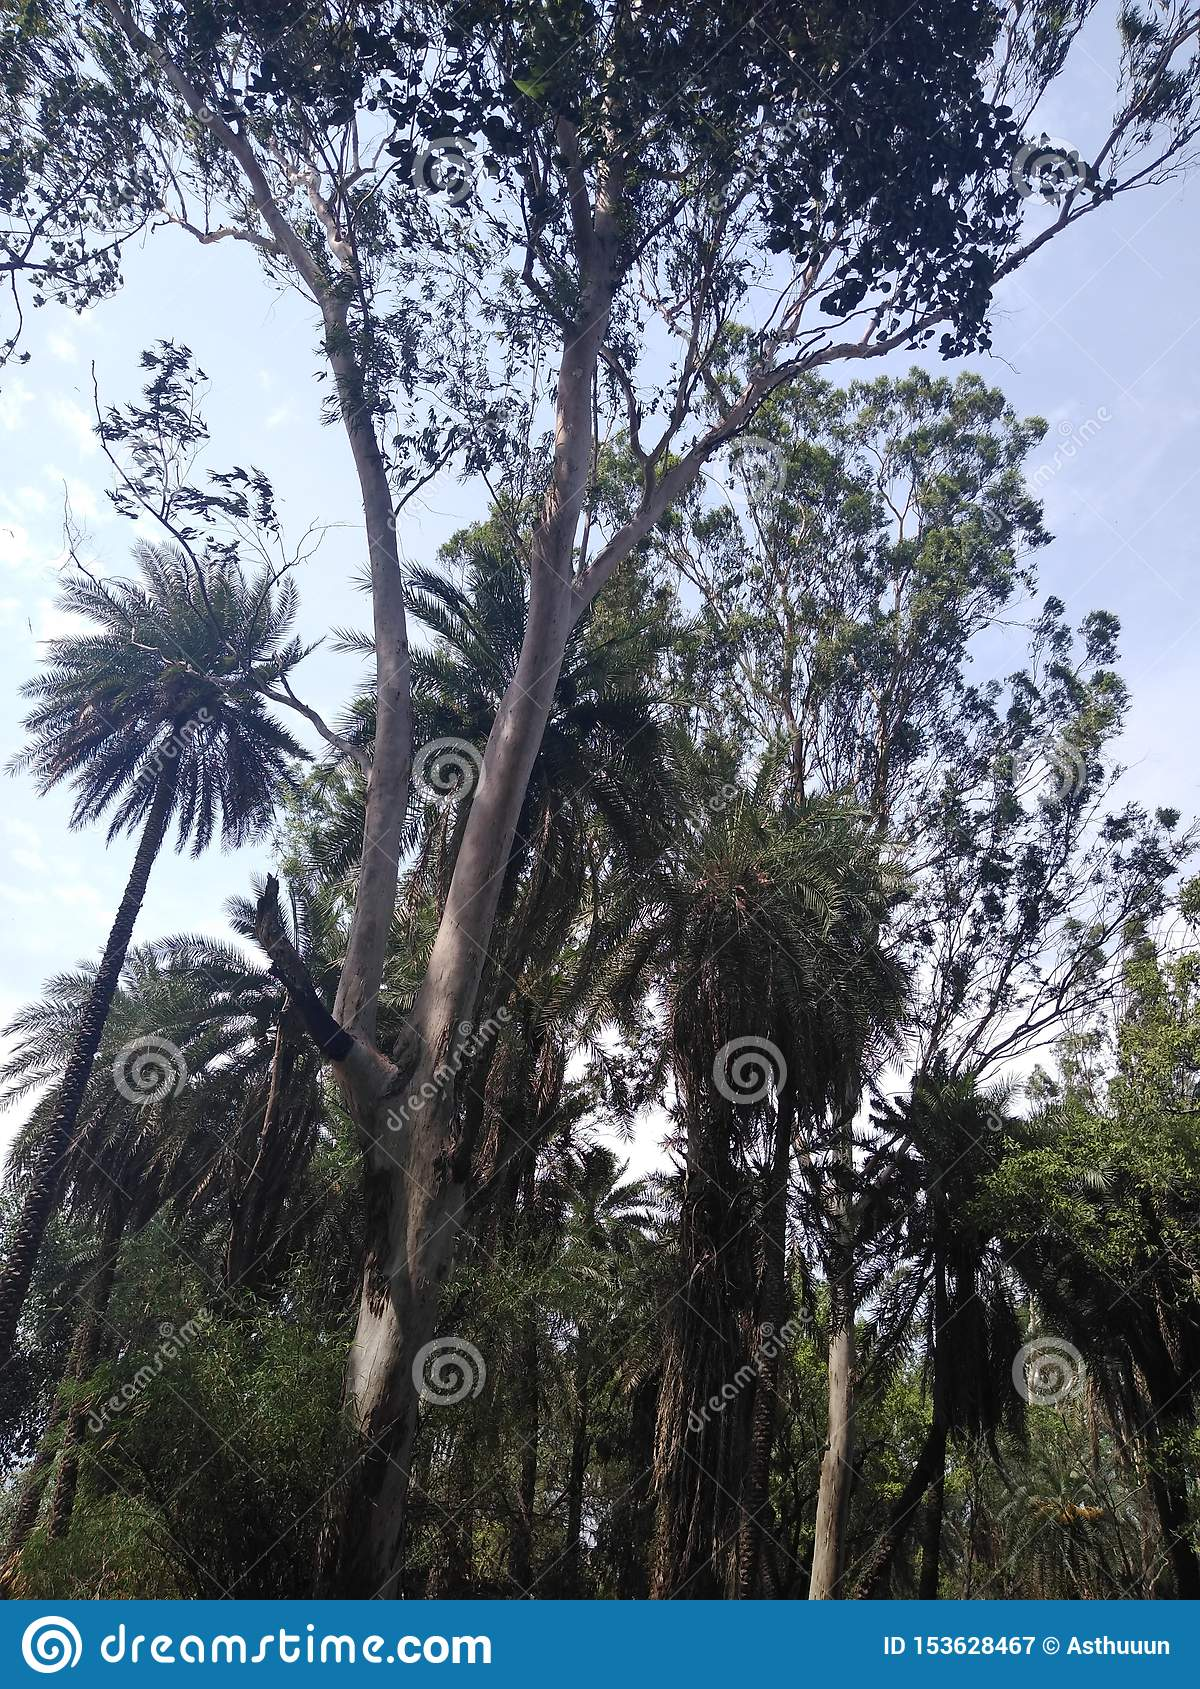 Eucalyptus and date trees with shrubs.